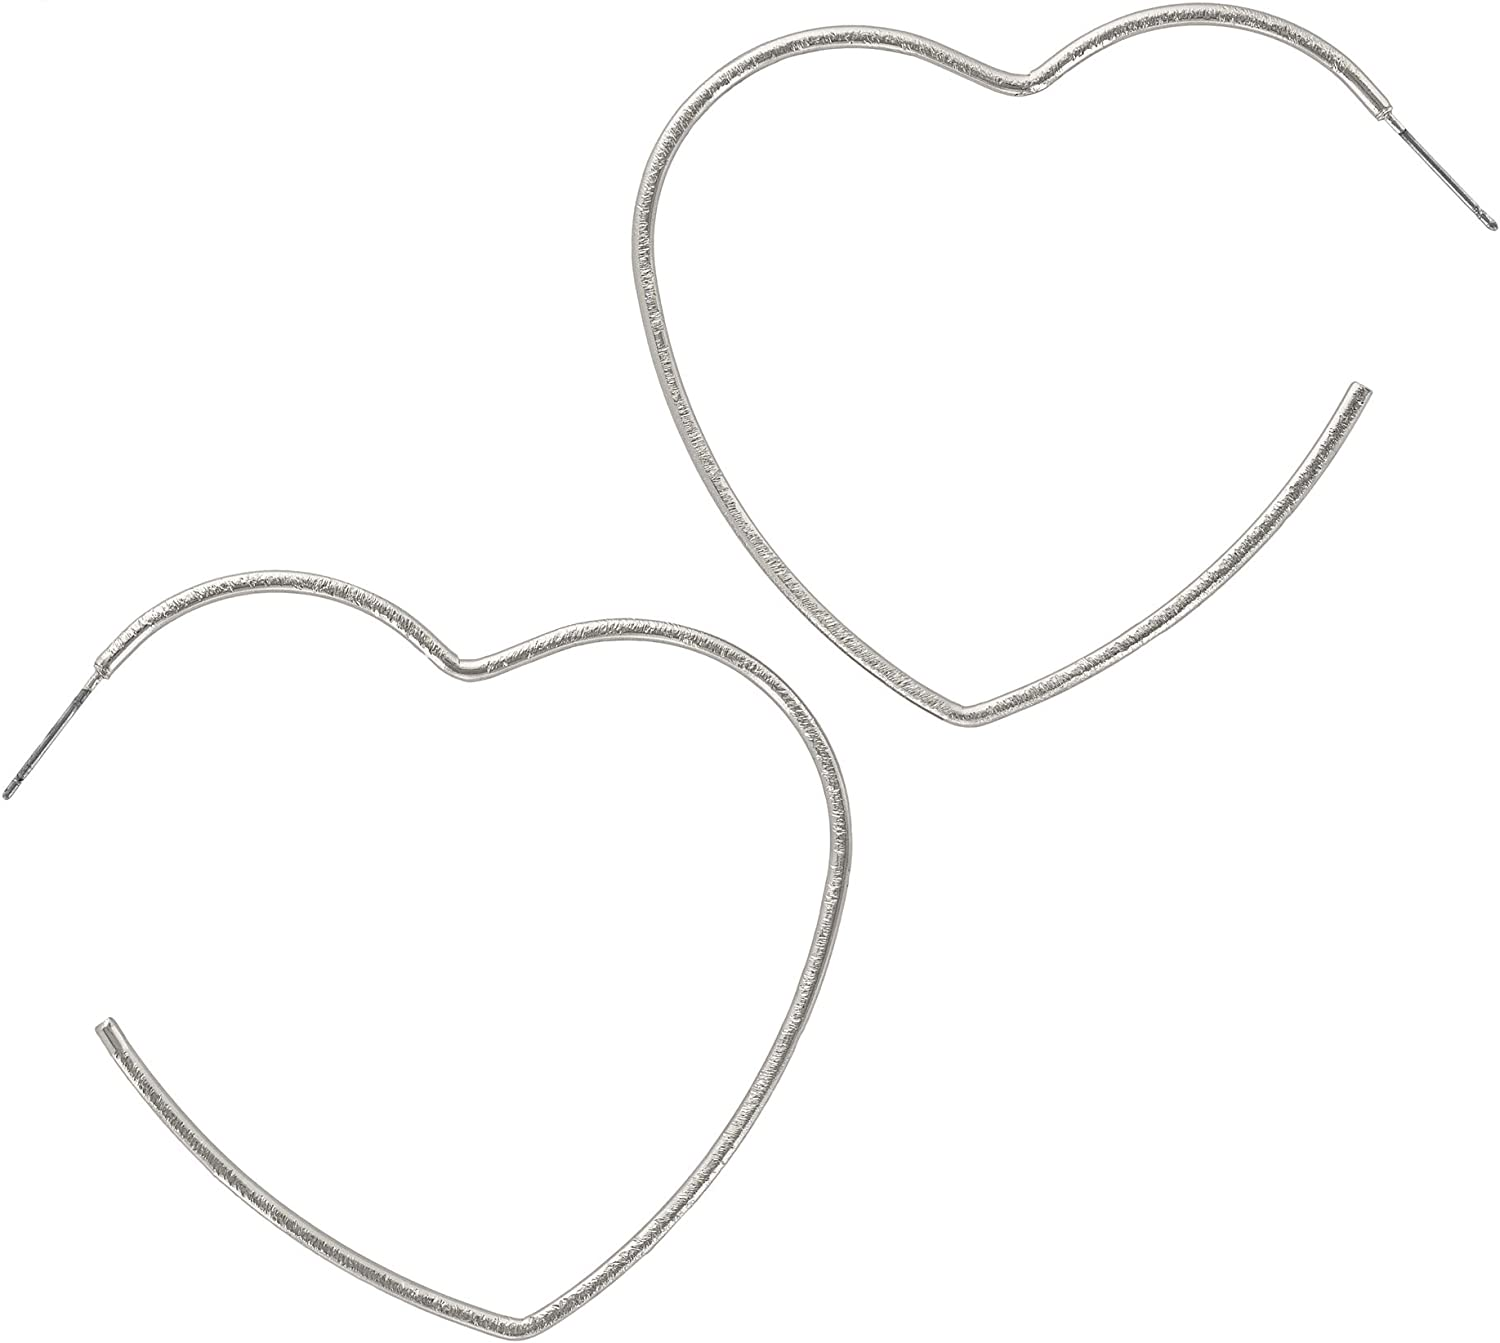 And Lovely 14K Gold or Rhodium Plated Heart Hoop Earrings with Satin Brush Finish - Hypoallergenic Lightweight Fun Statement Drop Dangle Heart Earrings